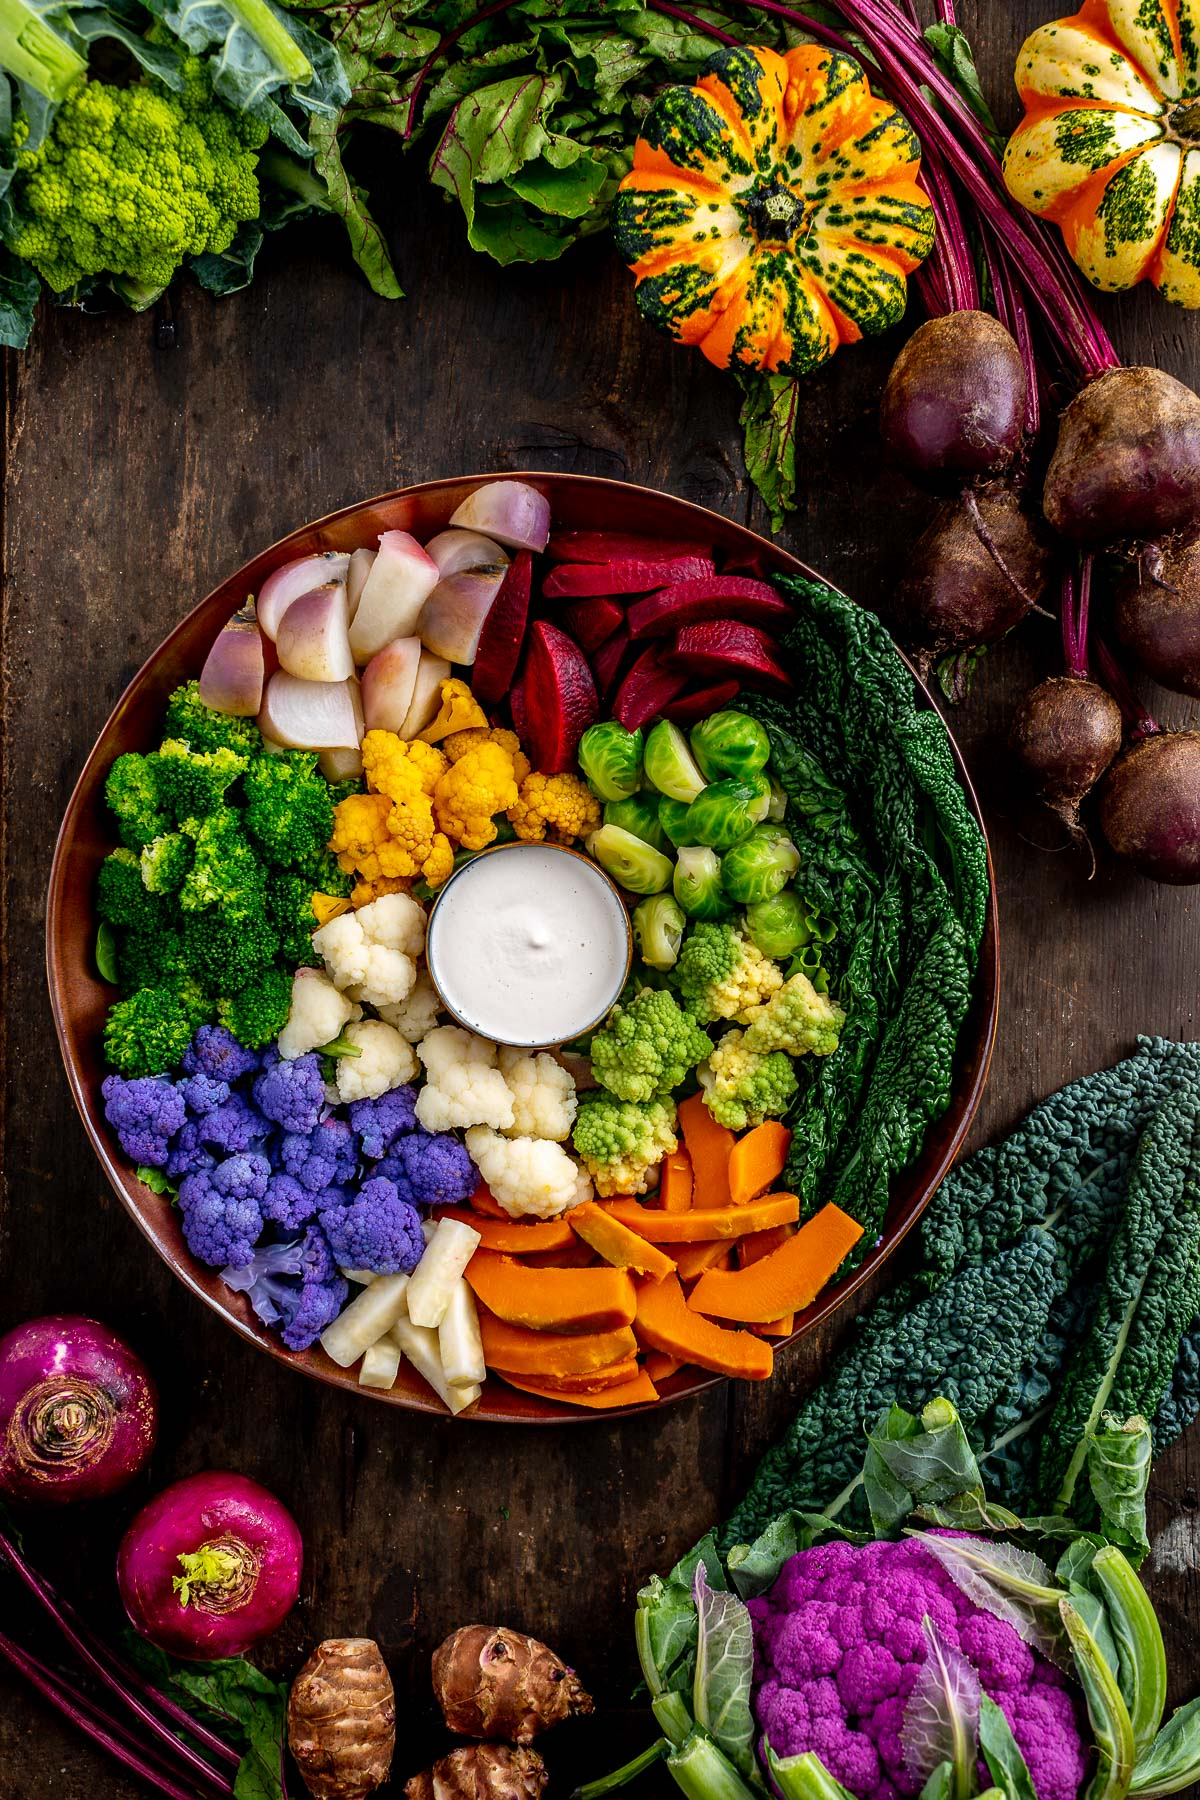 Vegan grain-free FALL HARVEST BUDDHA BOWL with steamed vegetables and EGG-FREE AIOLI Buddha bowl autunnale insalata di verdure al vapore e aioli senza uova